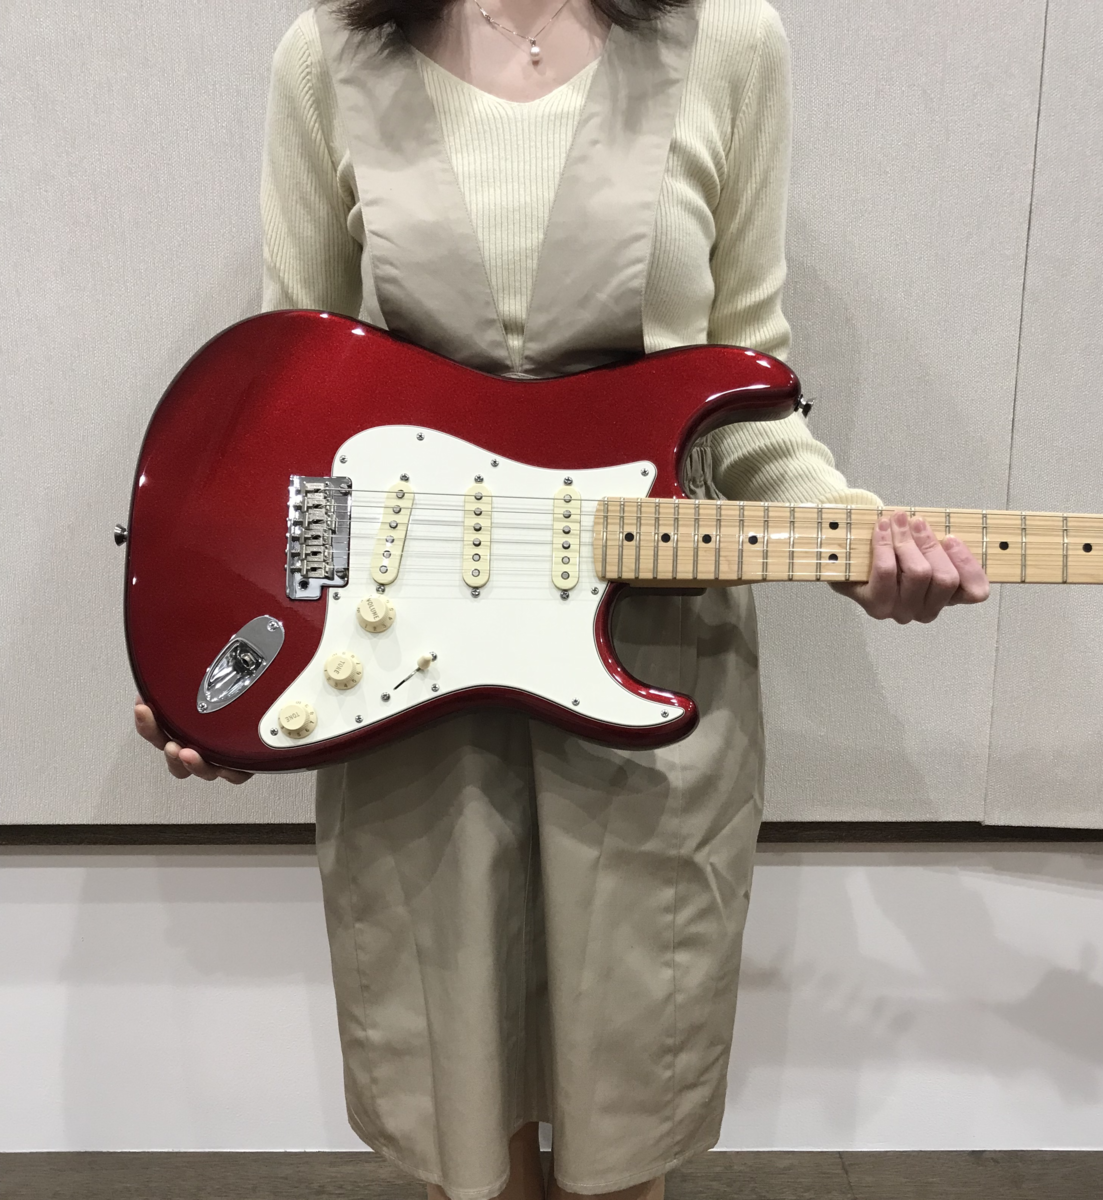 f:id:totalguitarmethod:20190421064936p:plain